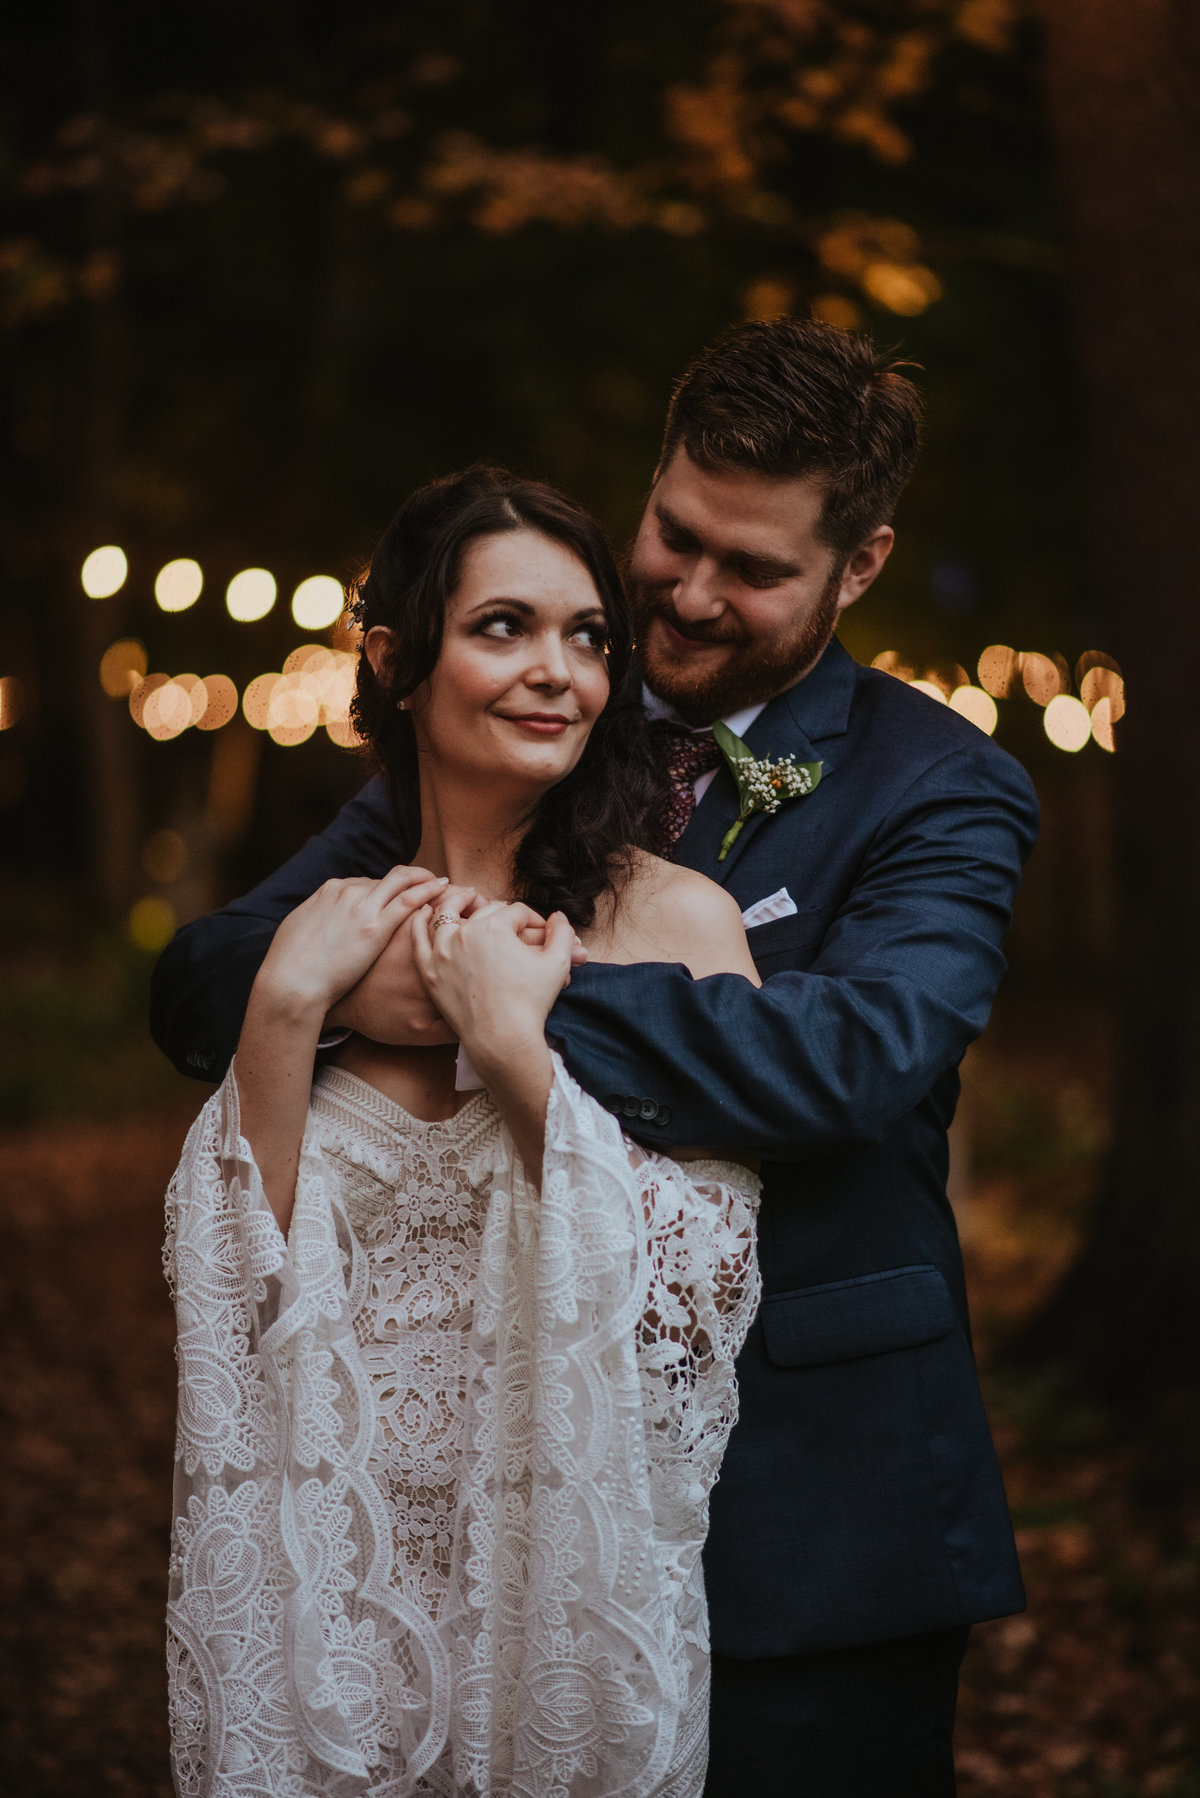 CatskillsJulietandEric2019WeddingPhotography (138 of 213)